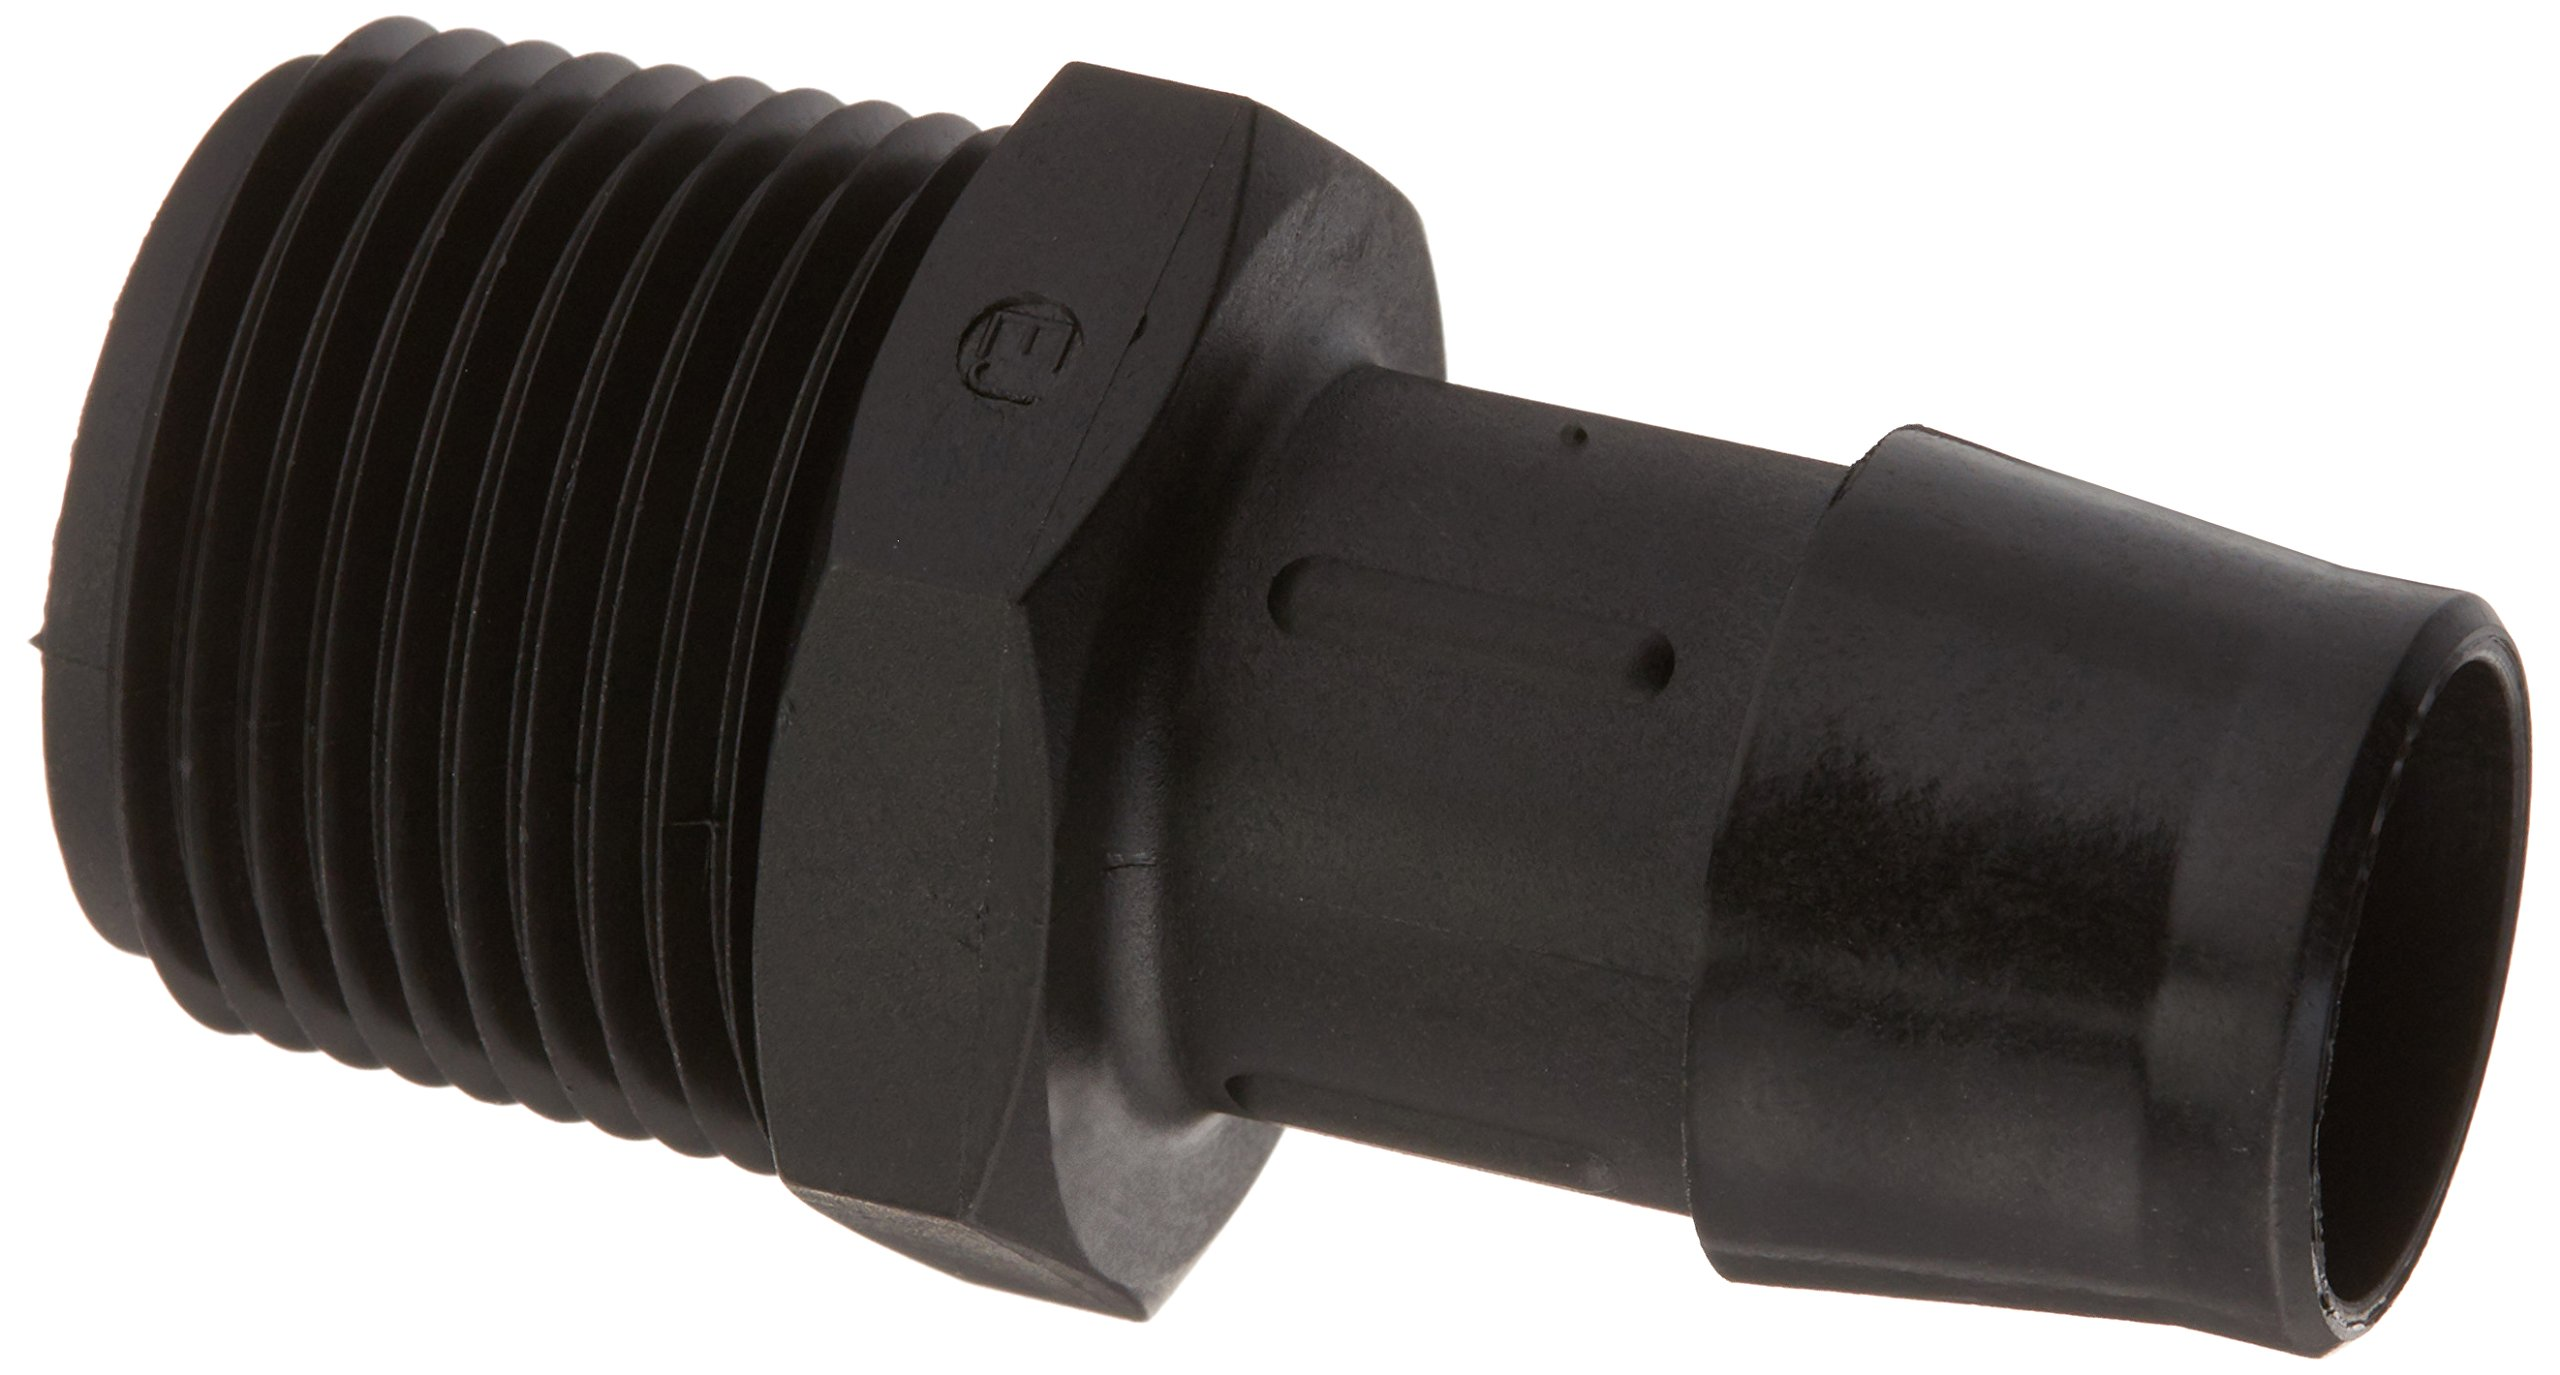 Eldon James A12-12GFBN Glass Filled Black Nylon Adapter Fitting, 3/4-14 NPT to 3/4'' Hose Barb (Pack of 10)